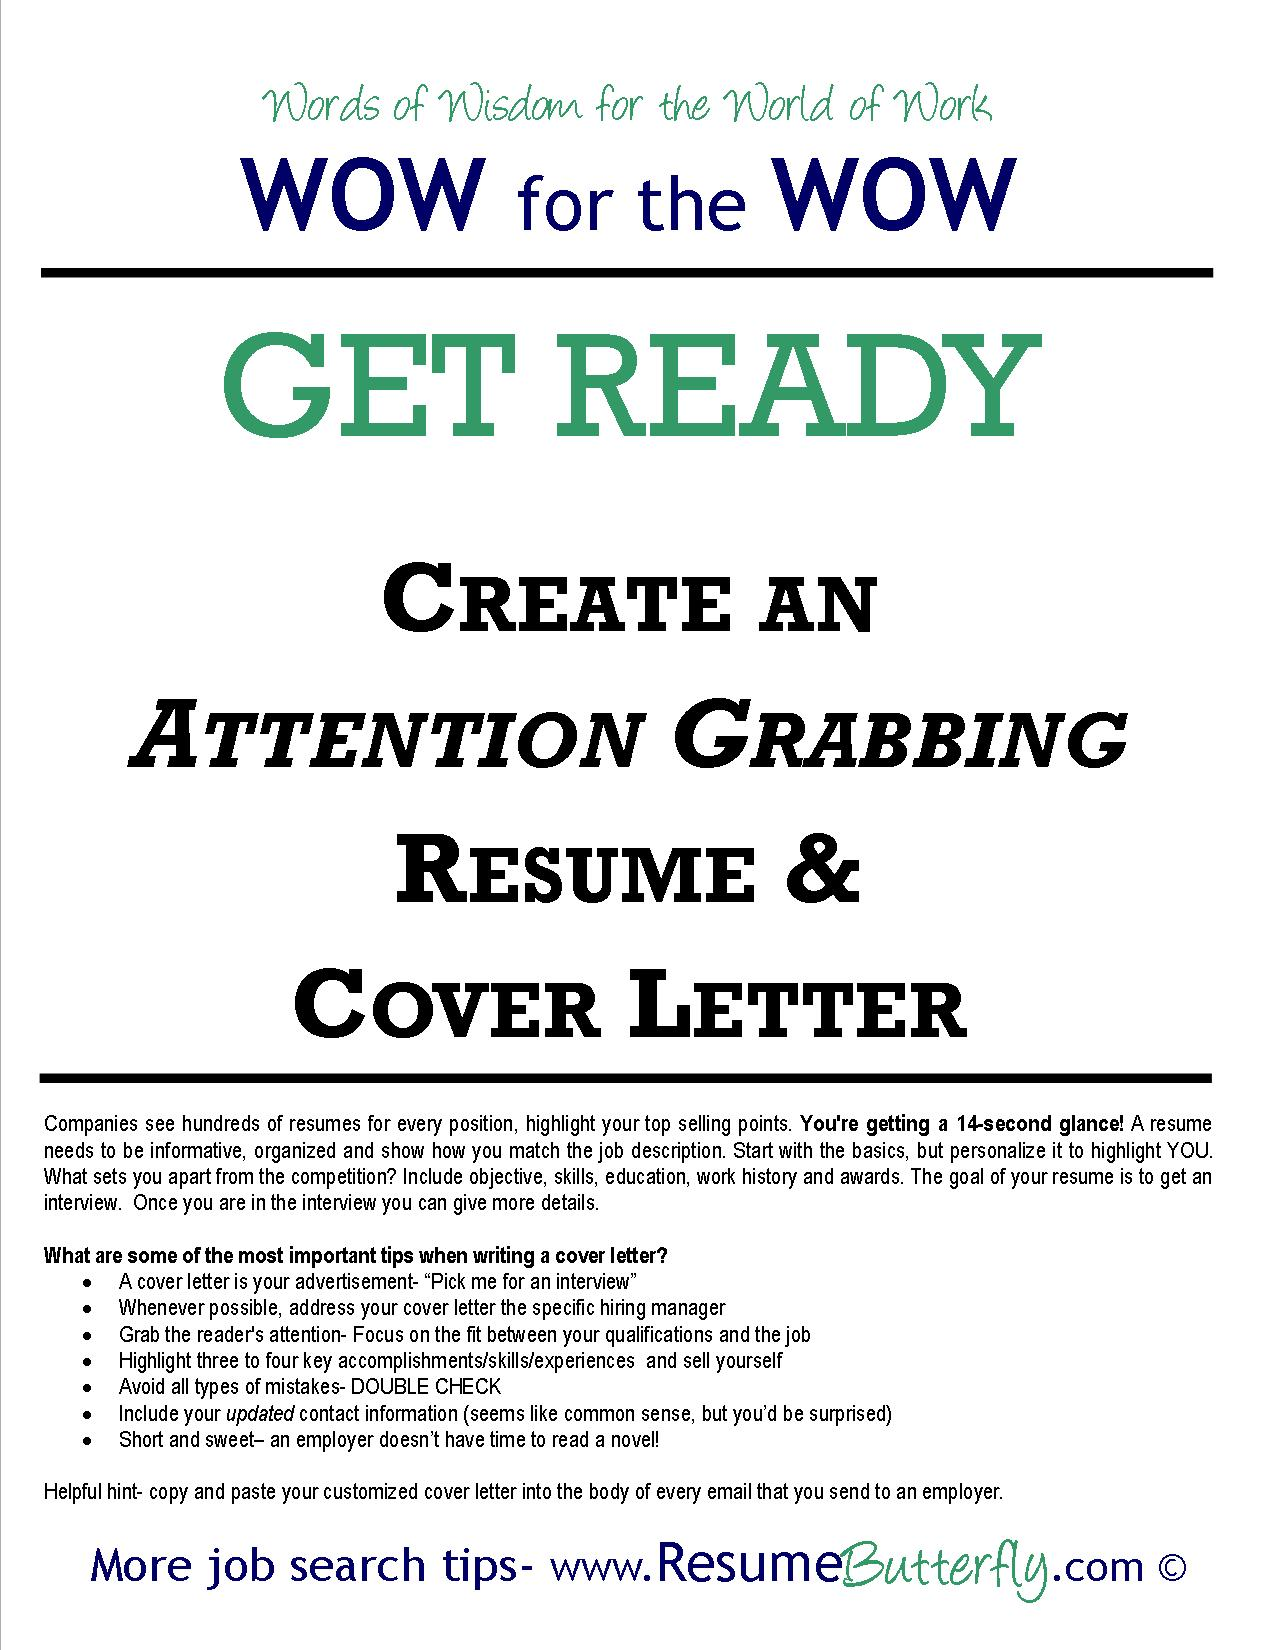 How To Prepare A Cover Letter For A Resume Wow For The Wow Job Search Skills Resume Butterfly Get Ready